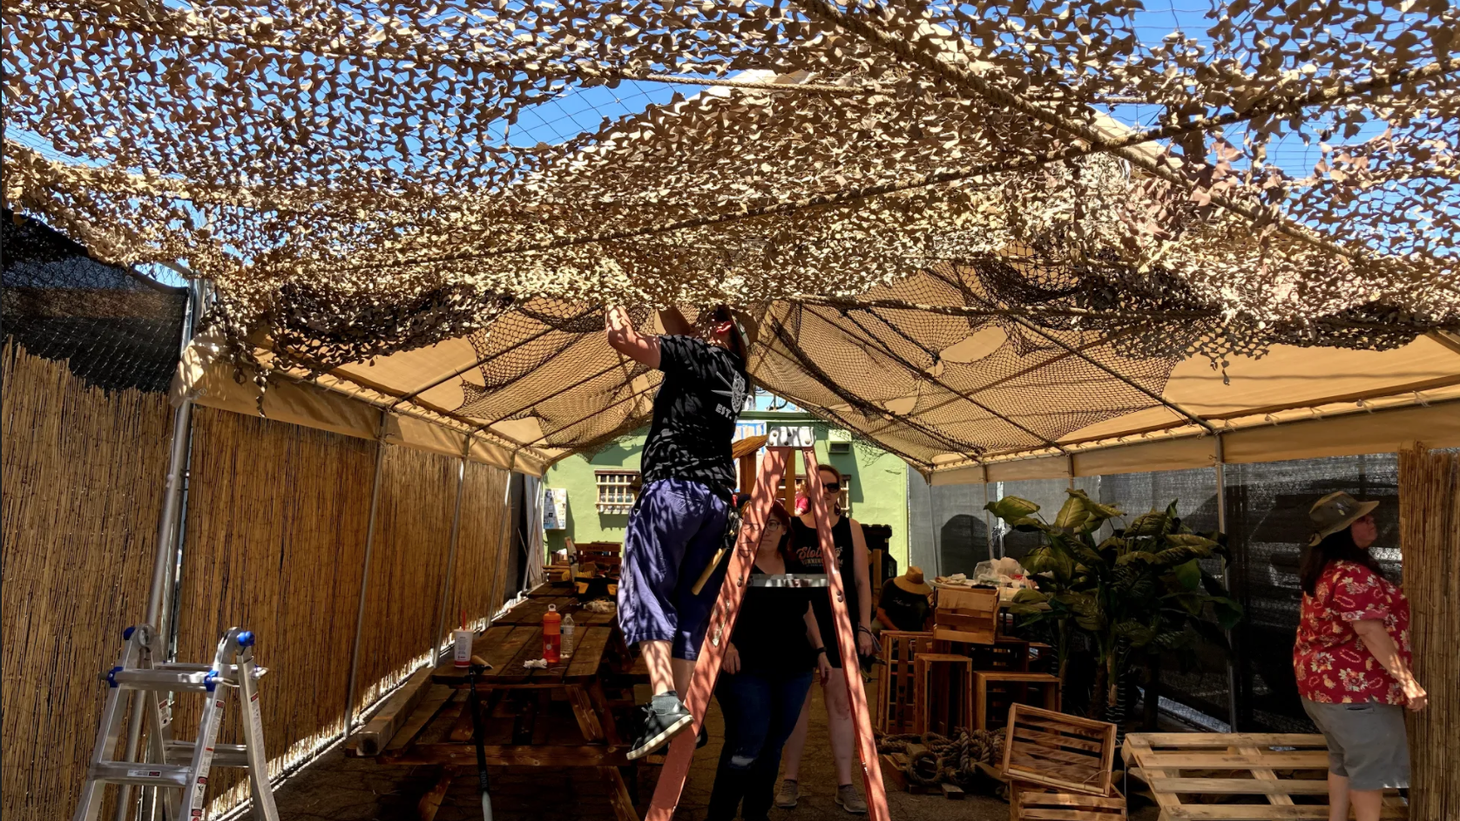 Dedicated Tonga Hut customers set up the netted roofing inside the lanai.